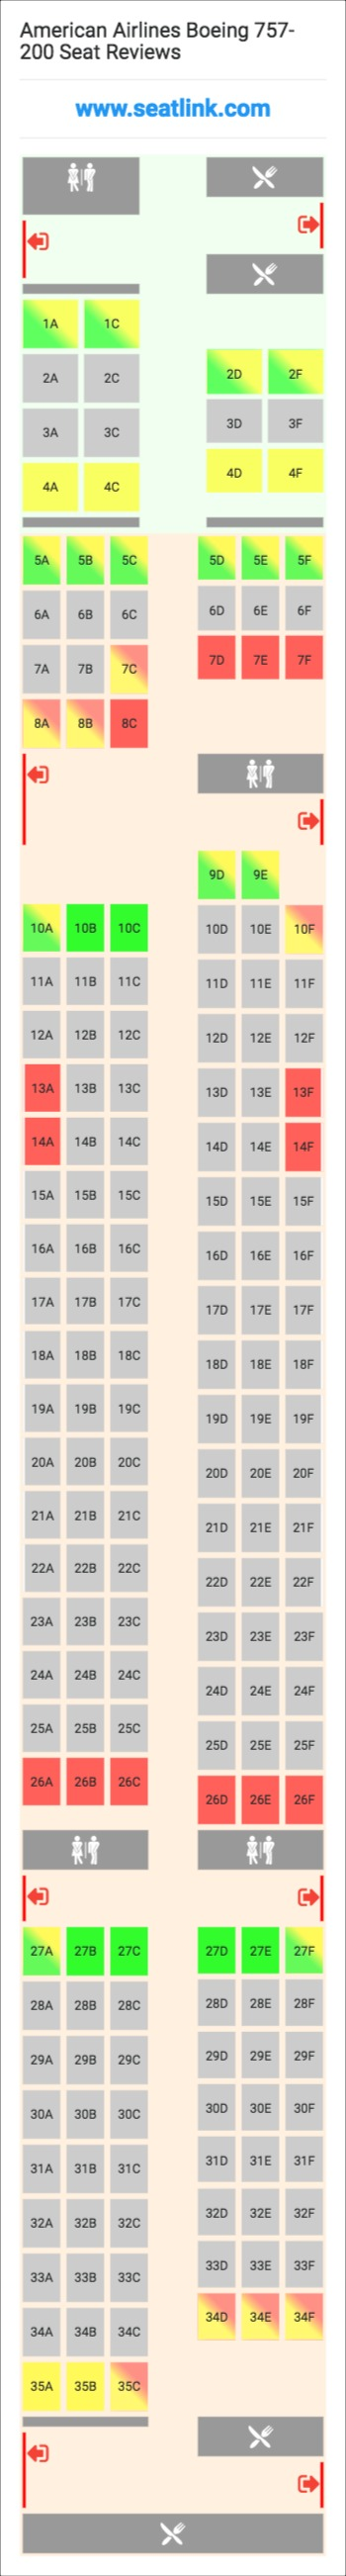 American Airlines Boeing 757-200 (752) Seat Map | Airbus ...